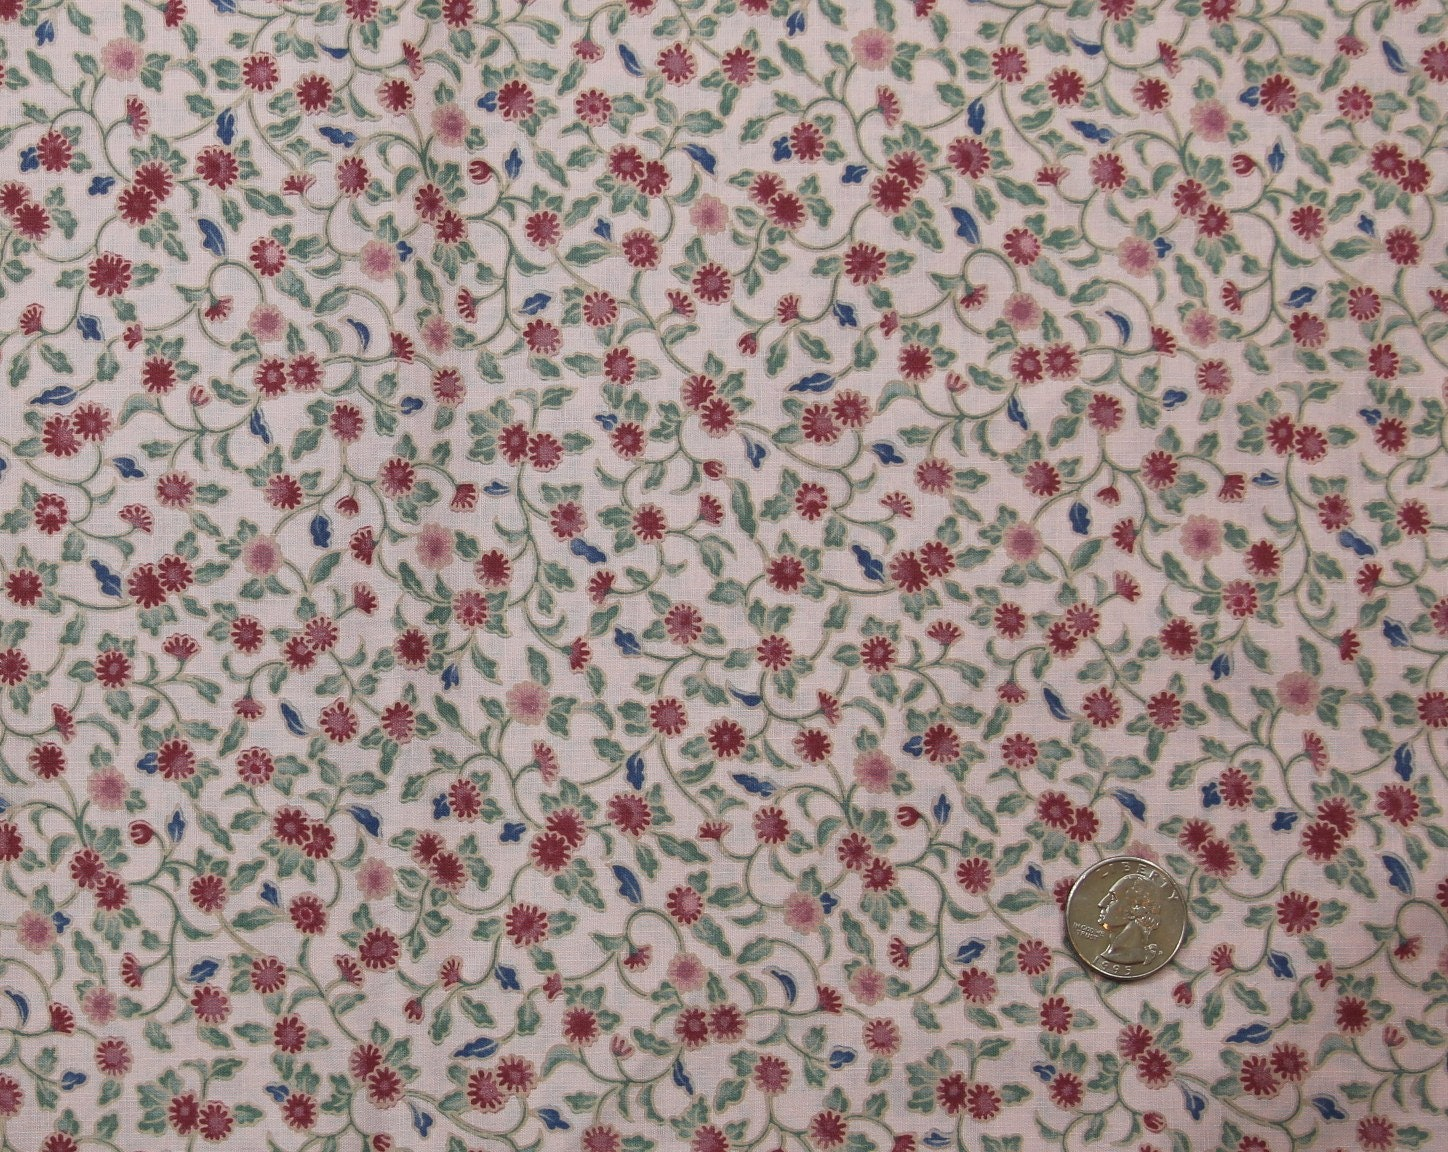 Small Rose Floral Print Cotton Fabric 44 Inches Wide 2 Yards